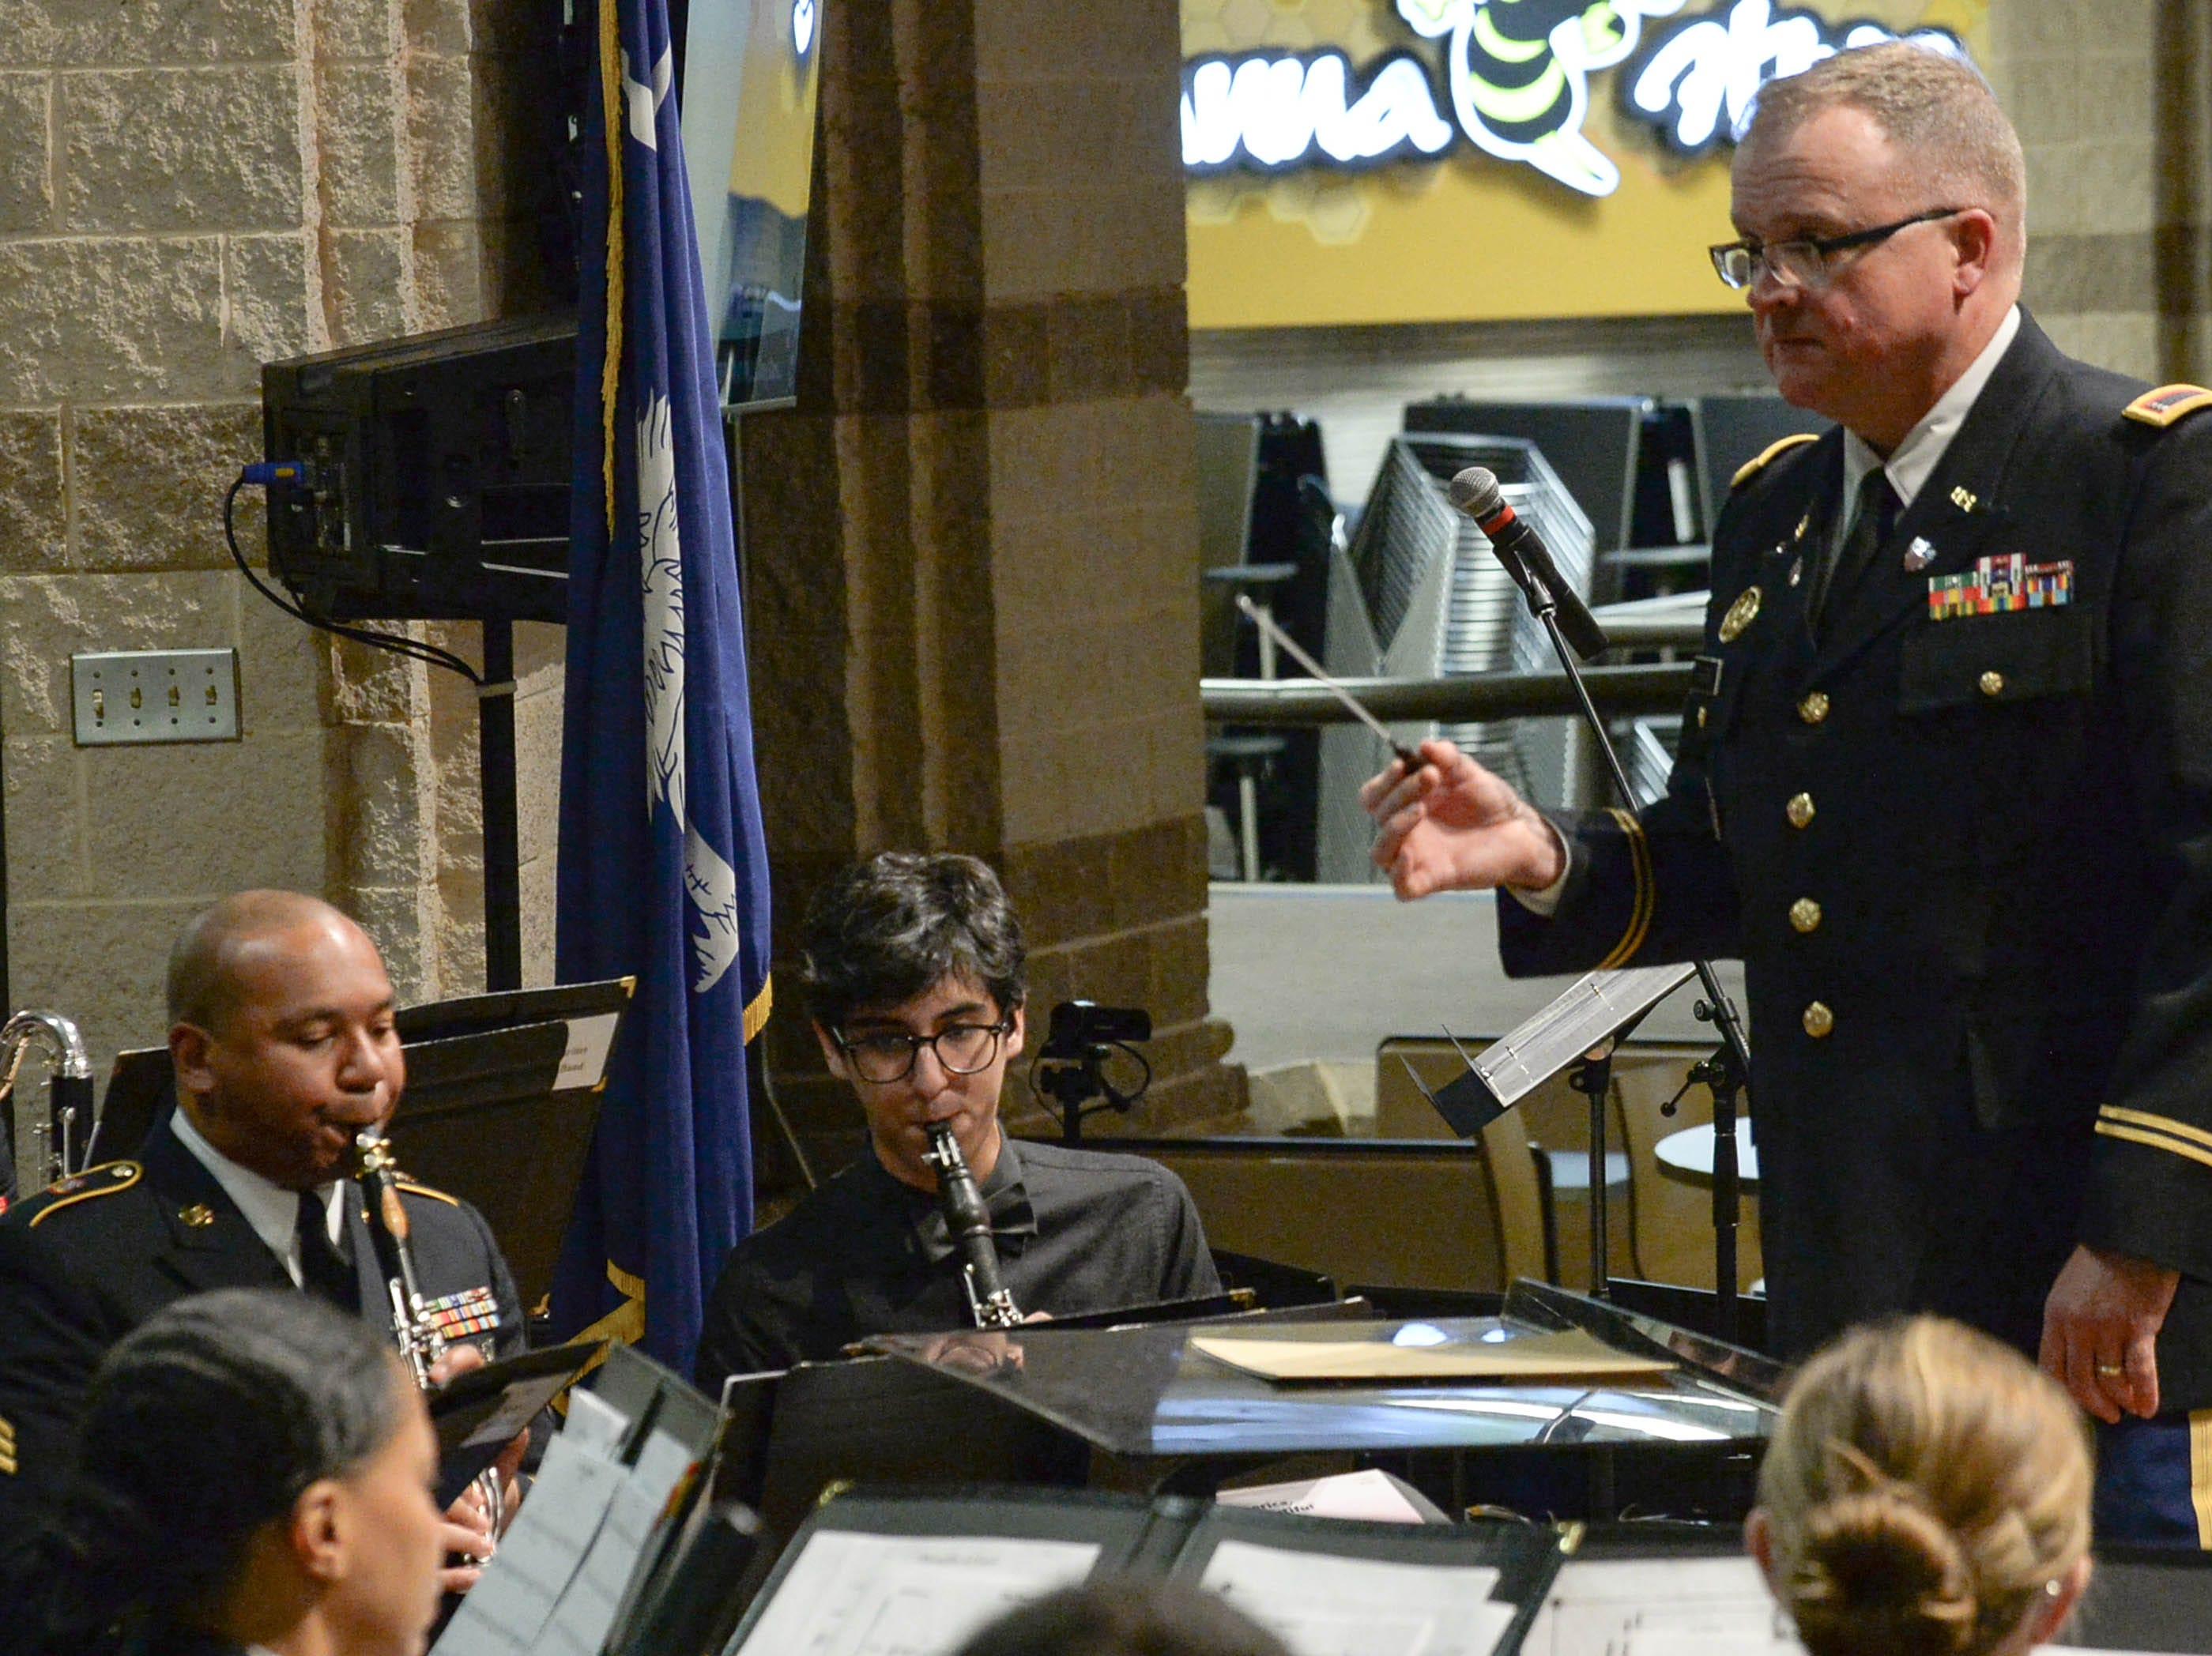 Emilio Becerra, middle, a senior at T.L. Hanna High School in Anderson, plays clarinet for one song near SGT Nigel Brown, left, under the direction of Bandmaster George T. Bauer, right, of the 282d U.S. Army Band, during a free concert at T.L. Hanna High School in Anderson Thursday, March 7.   Bauer, a 1987 D.W. Daniel High School graduate, and the band are visiting high schools in the upper state, where they talk with band class students about band opportunities in the U.S. Army and Columbia's Fort Jackson.